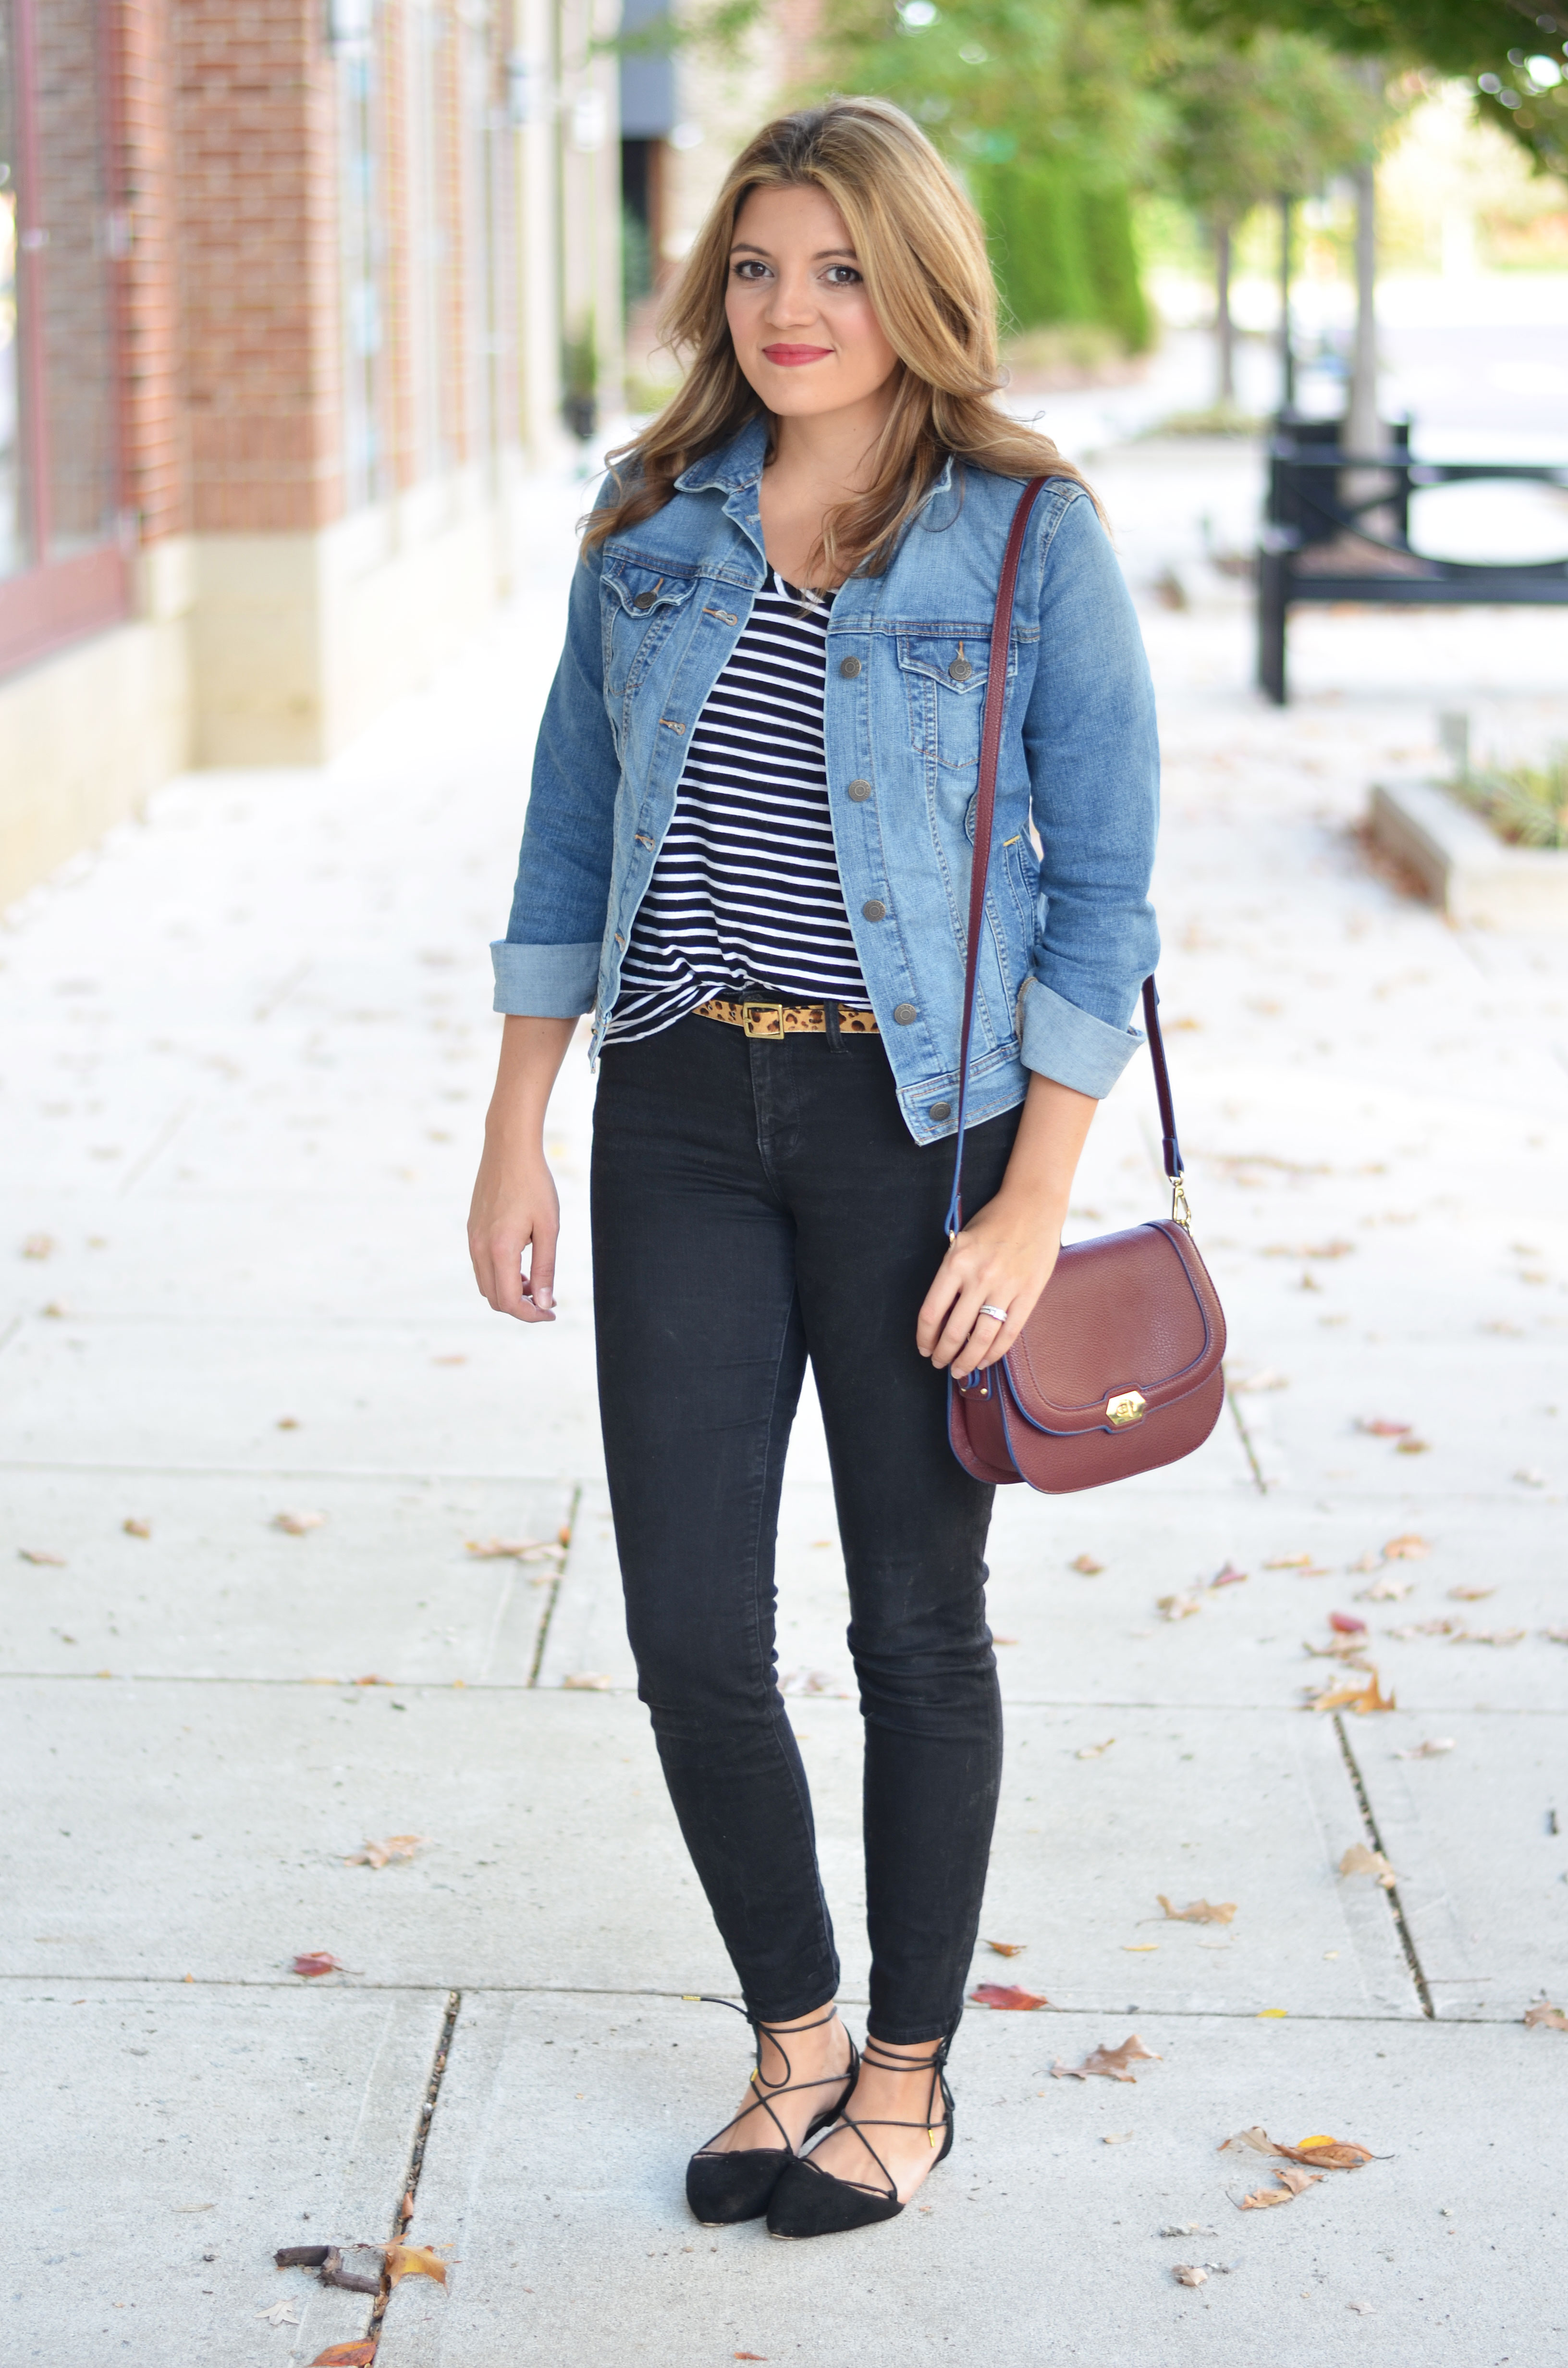 perfect denim jacket outfit - black jeans with denim jacket | www.bylaurenm.com